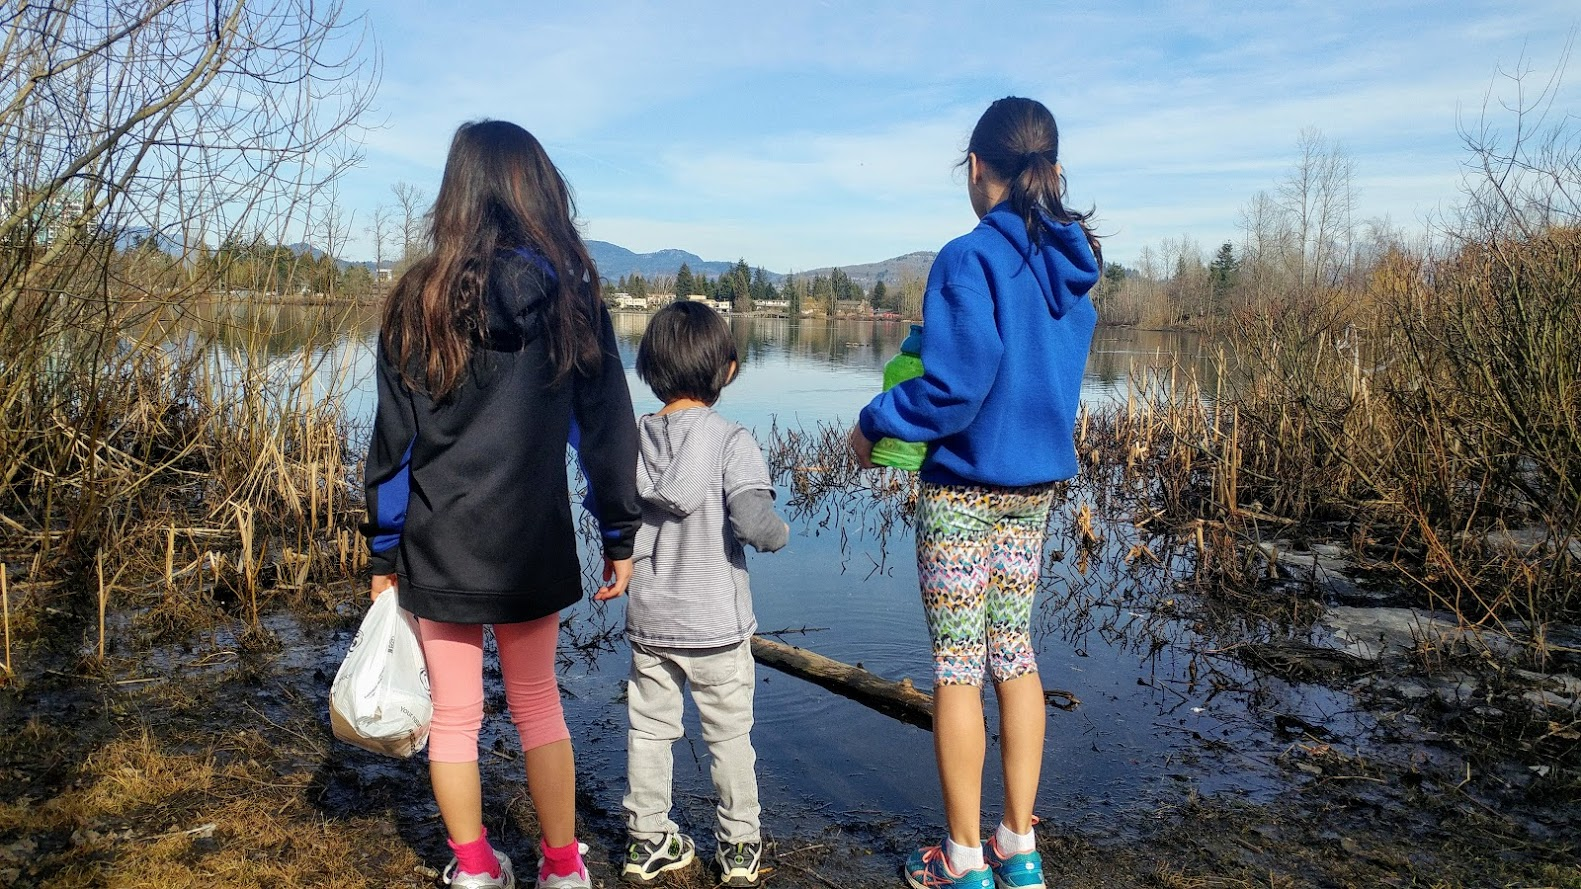 This is the year 2019. My kids are off from school for two weeks of spring beak, so we all agreed to explore the Mill Lake Park once more. Exploring the outdoors, especially nature, is a perfect way to stay away from electronics and screens.